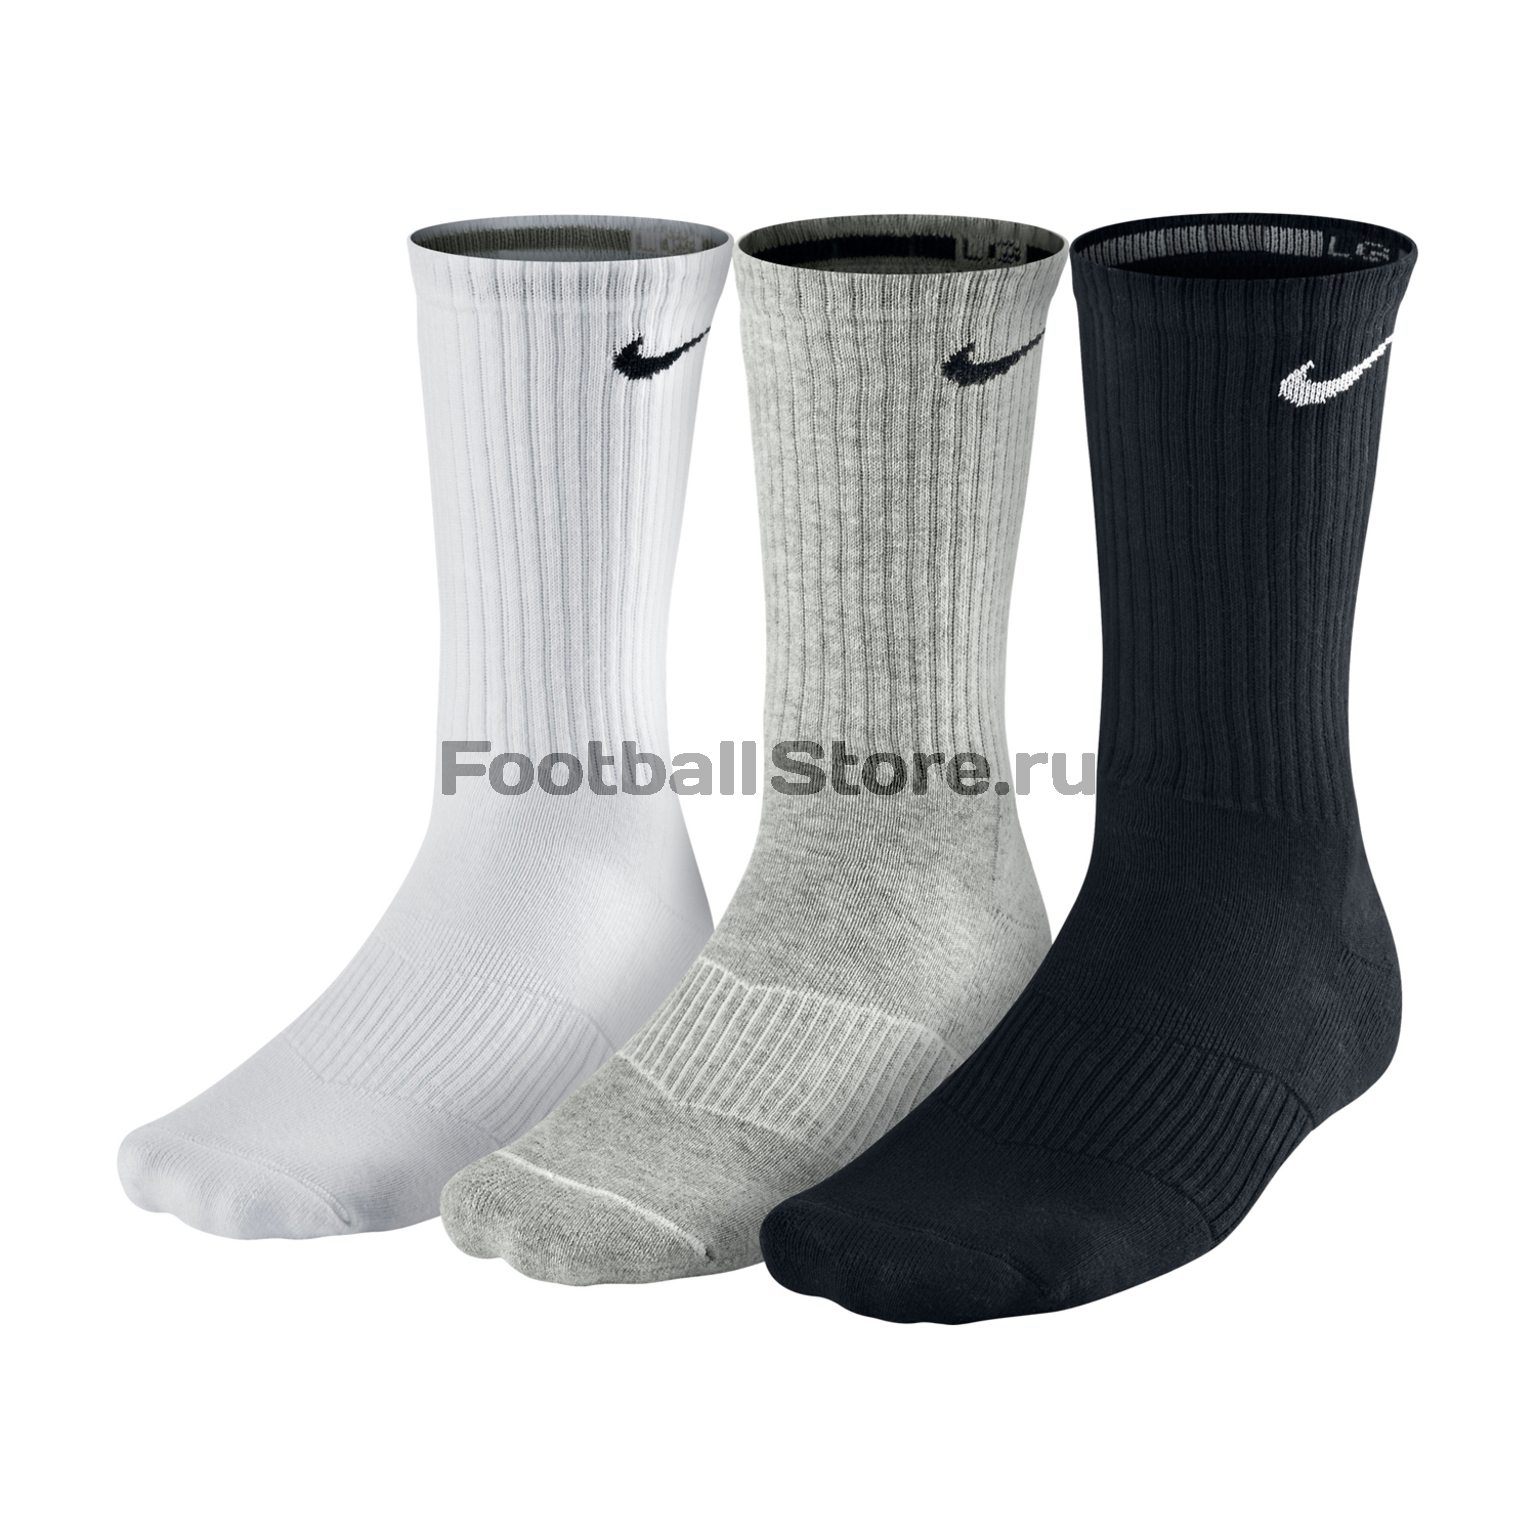 Комплект носков Nike 3ppk cushion crew SX4700-901 комплект носков nike 3ppk value cotton crew smlx sx4508 101